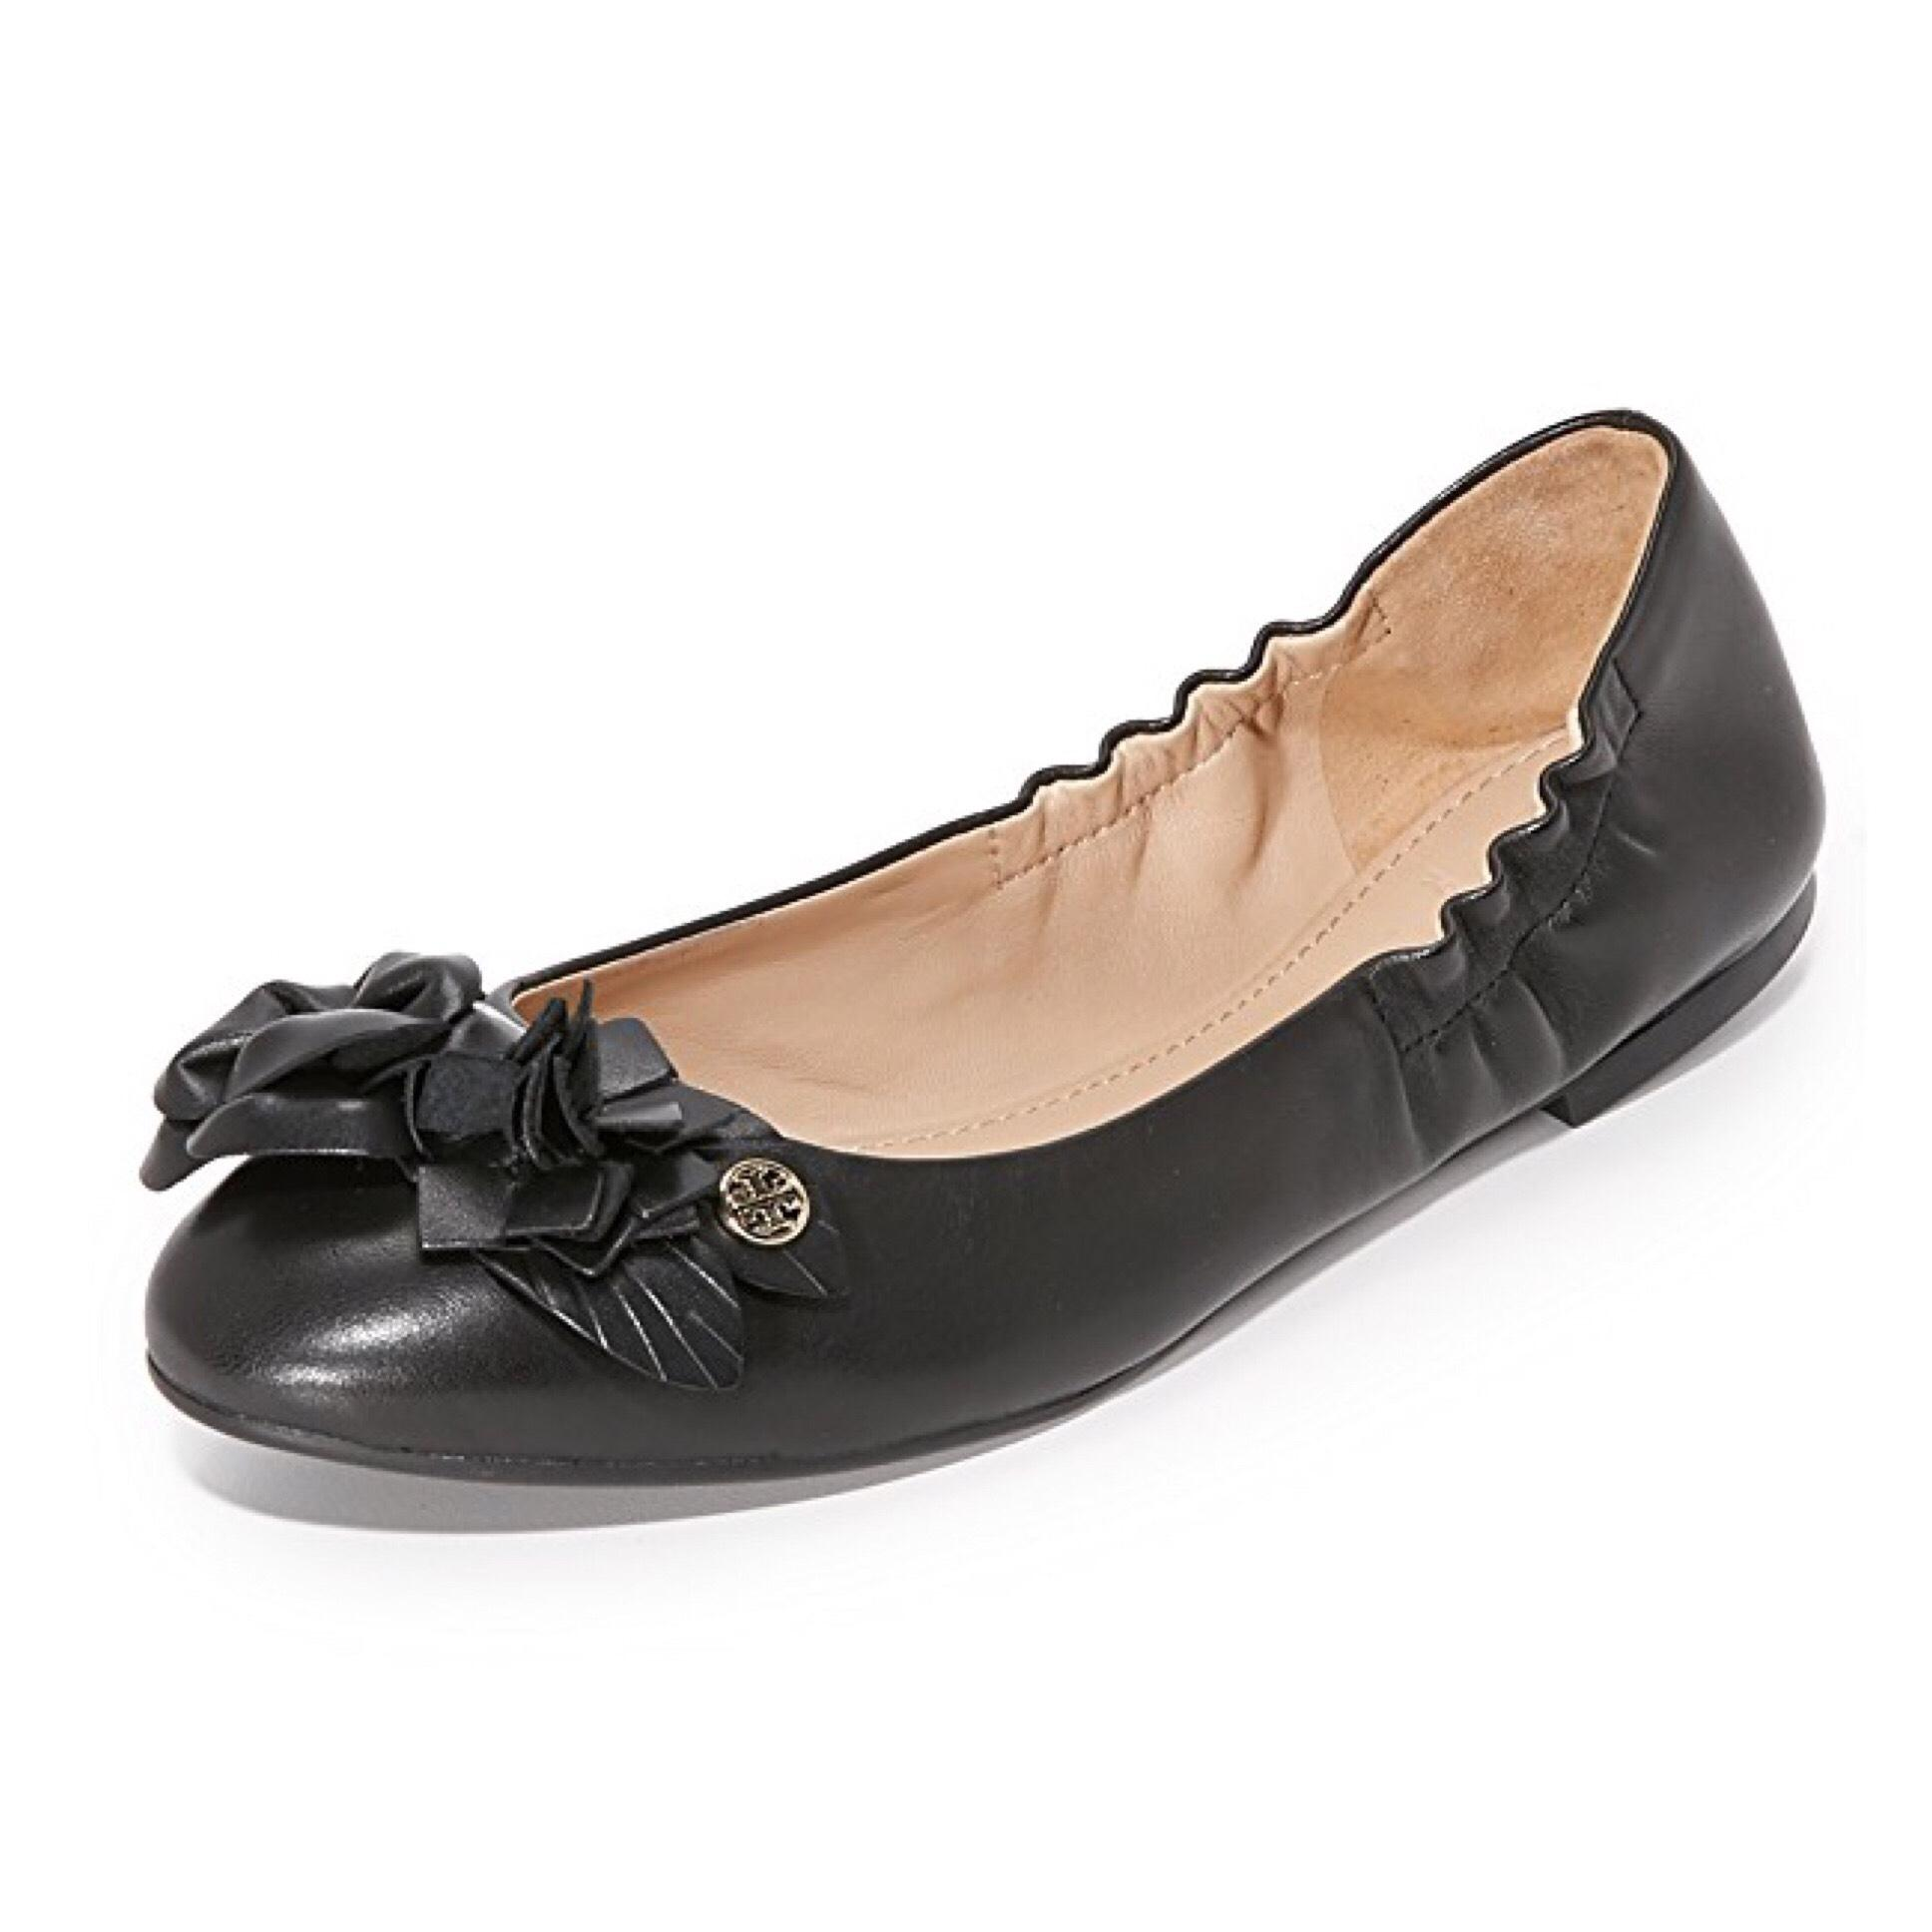 230a7adc3acba Tory Burch Black Blossom Leather Floral Floral Floral Logo Ballet Flats Size  US 8 Regular (